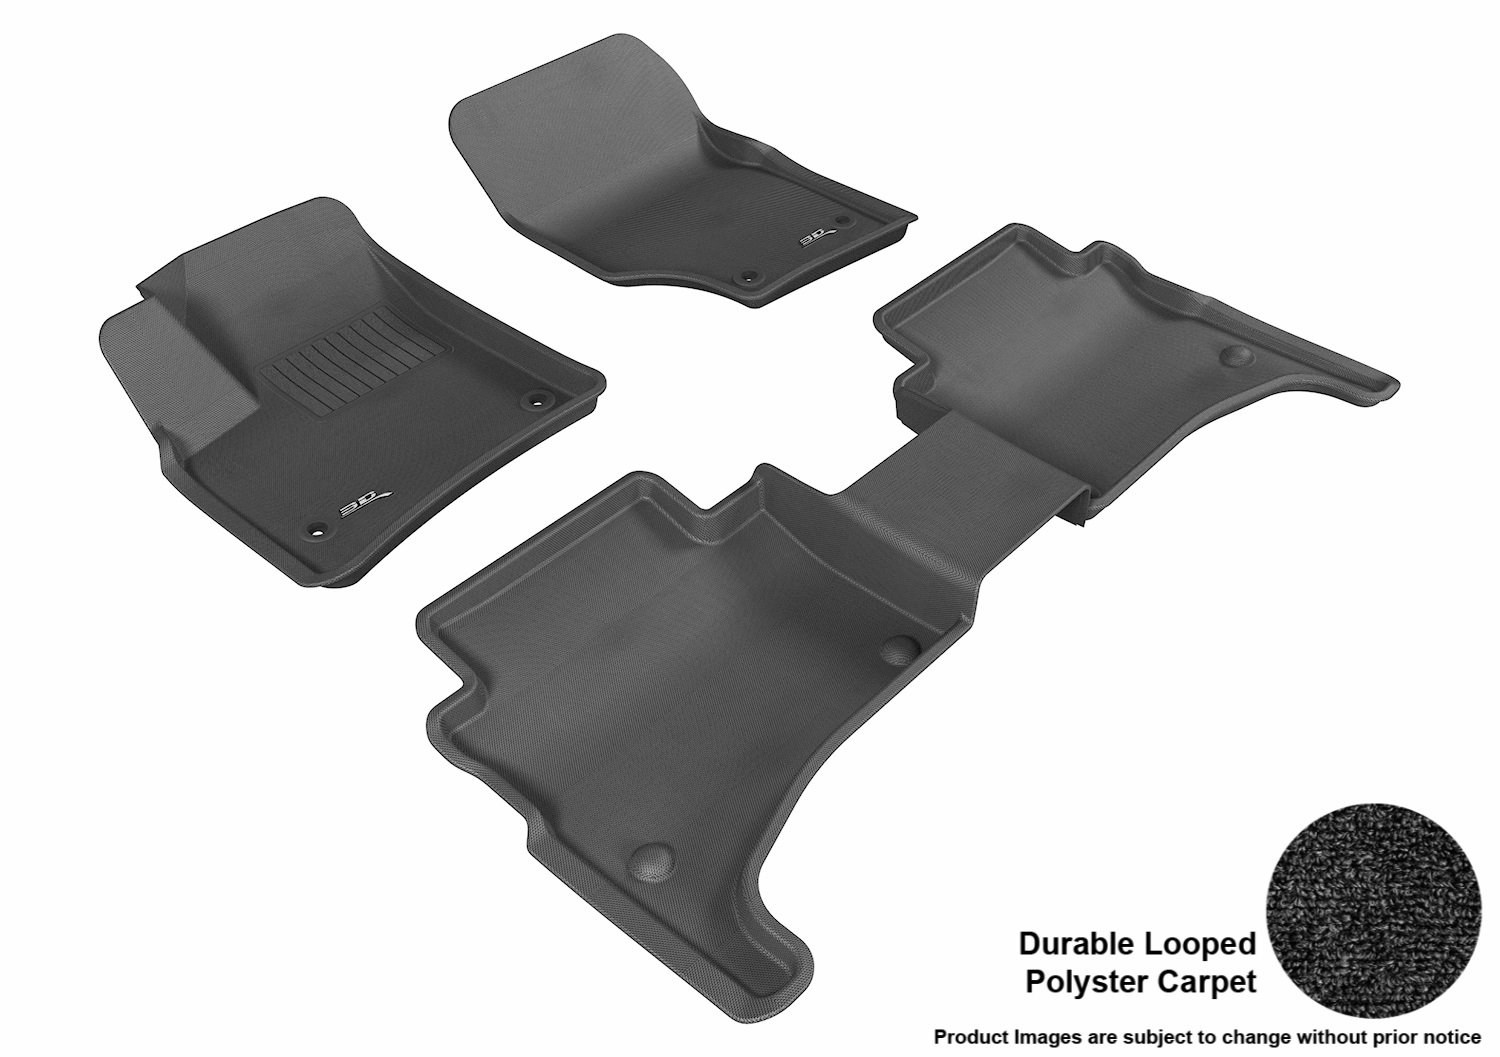 3DM-L1VW01202209 3D MAXpider Floor Mat Set; Black; Durable Looped Poly Carpet; Front and Rear